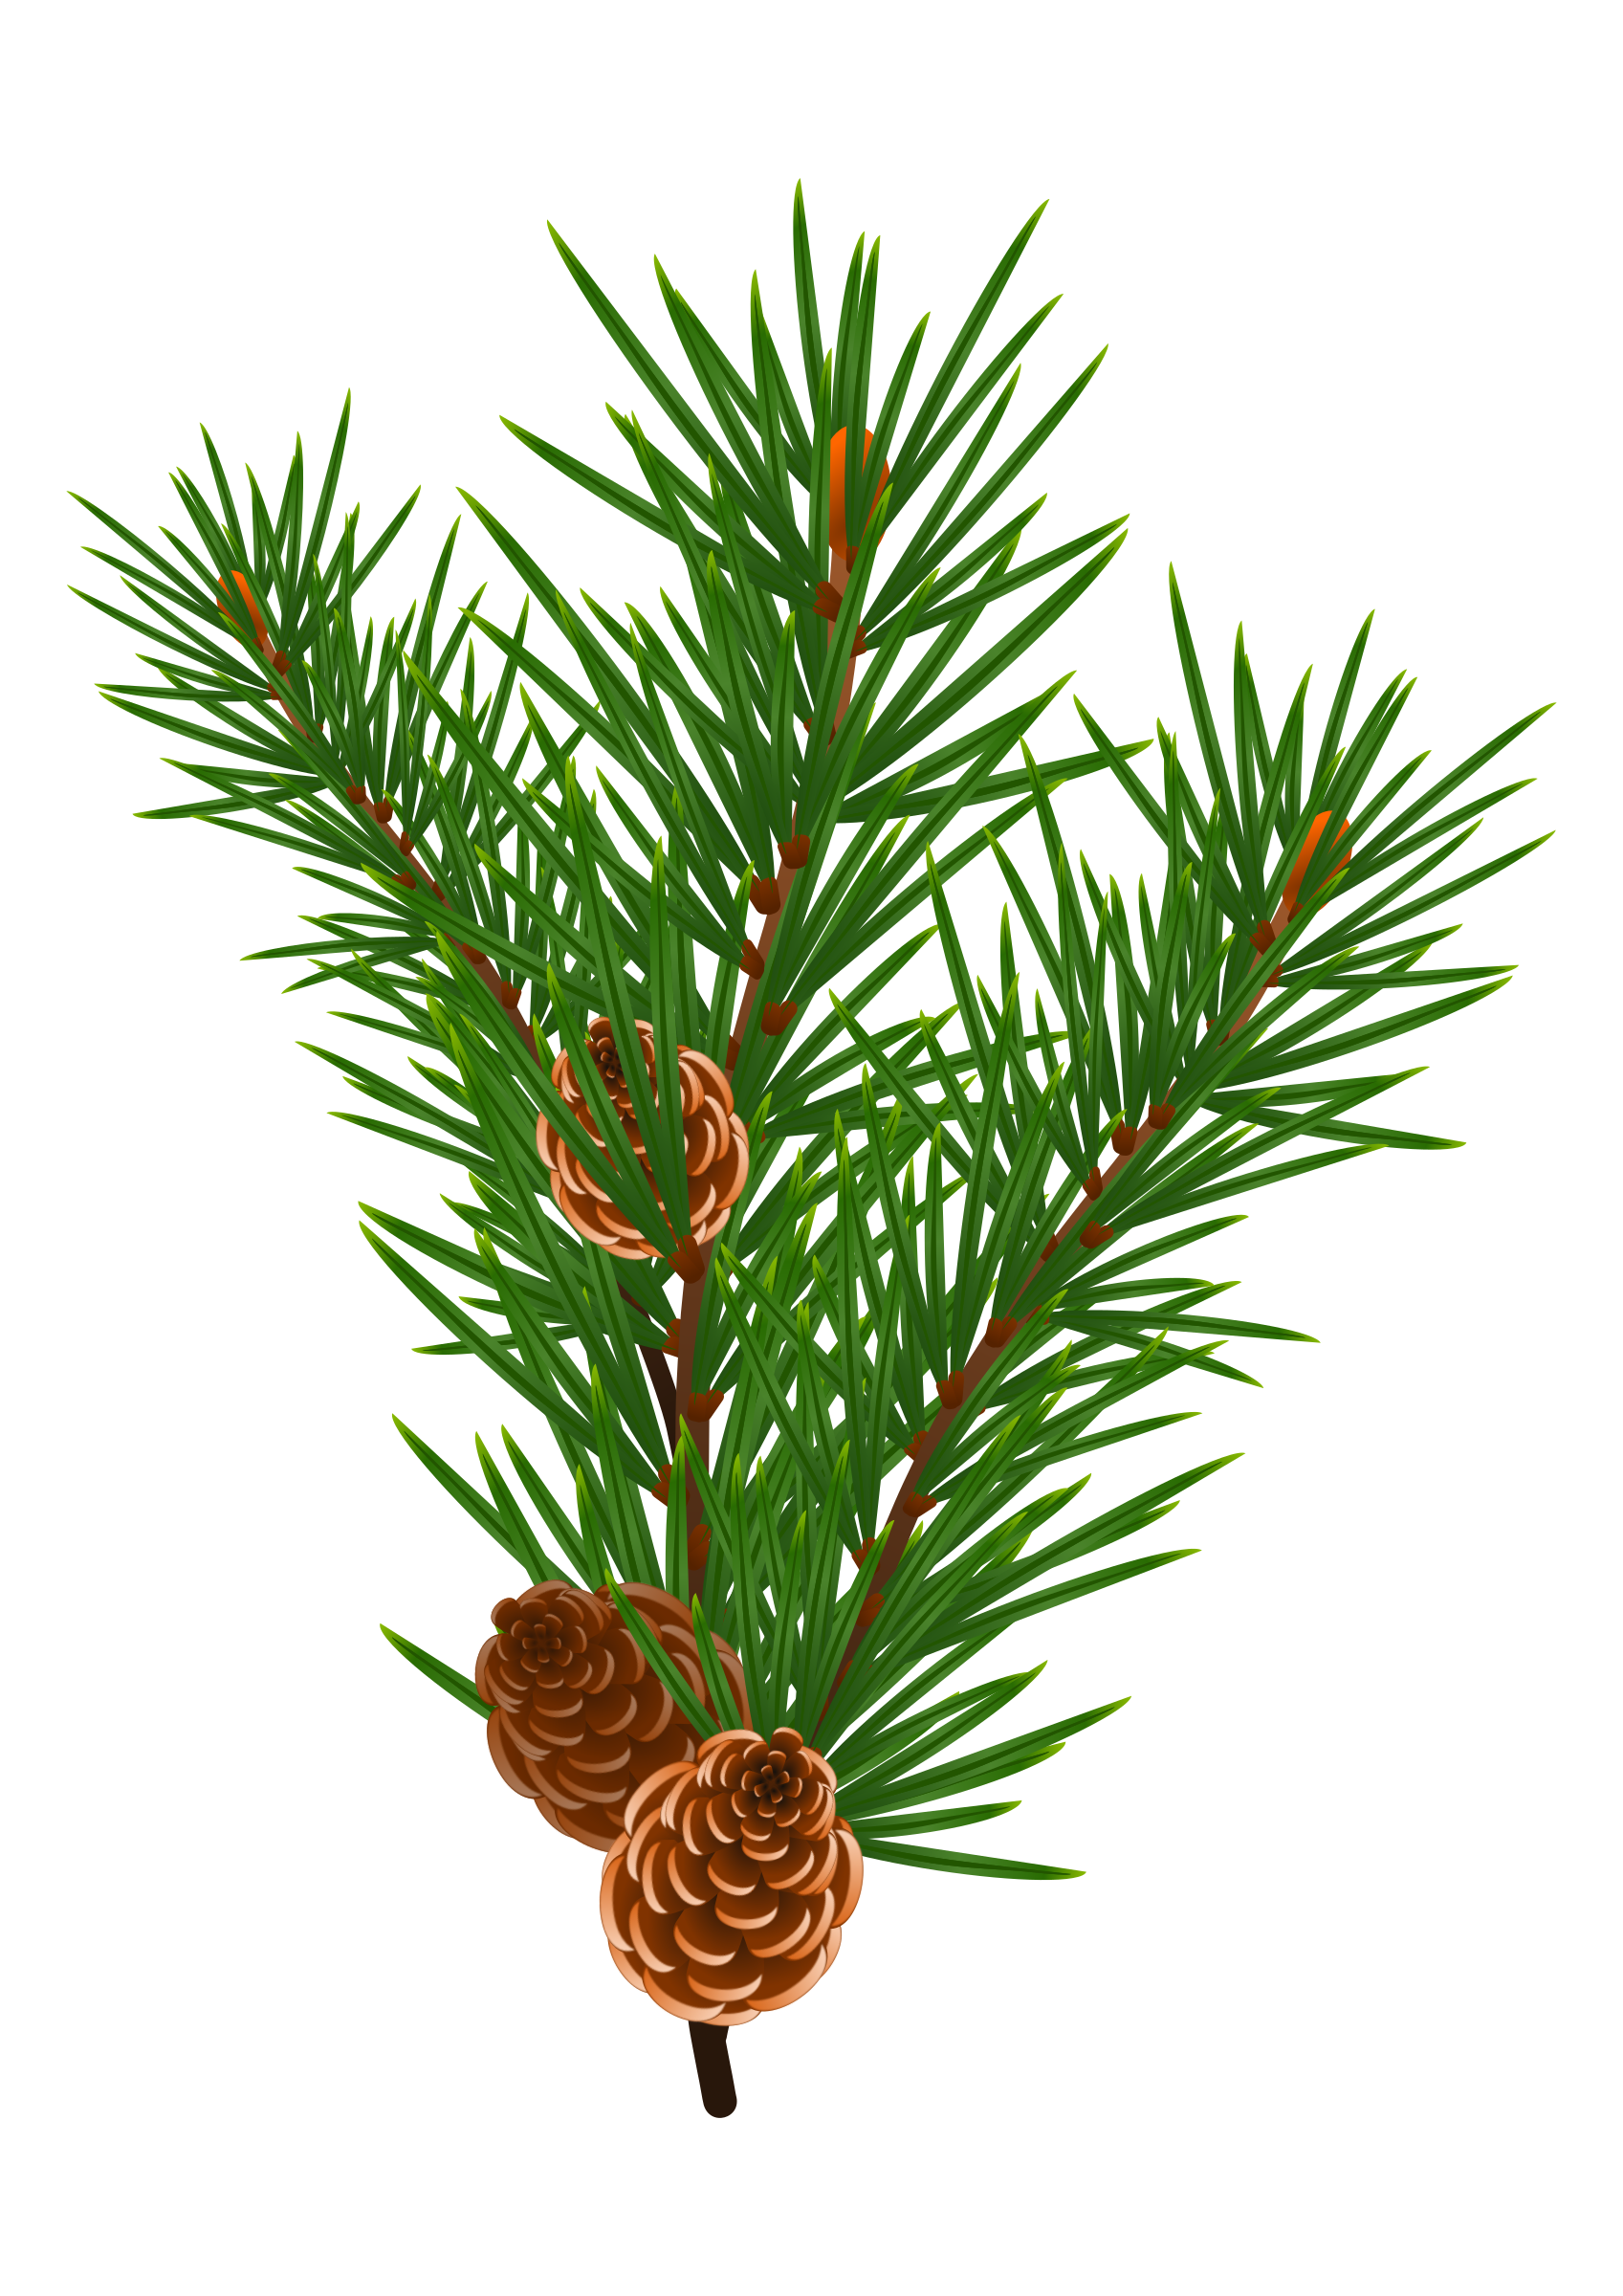 Pine branches clipart clip art transparent library Pine Branch with Pine Cones Vector Clipart image - Free stock photo ... clip art transparent library